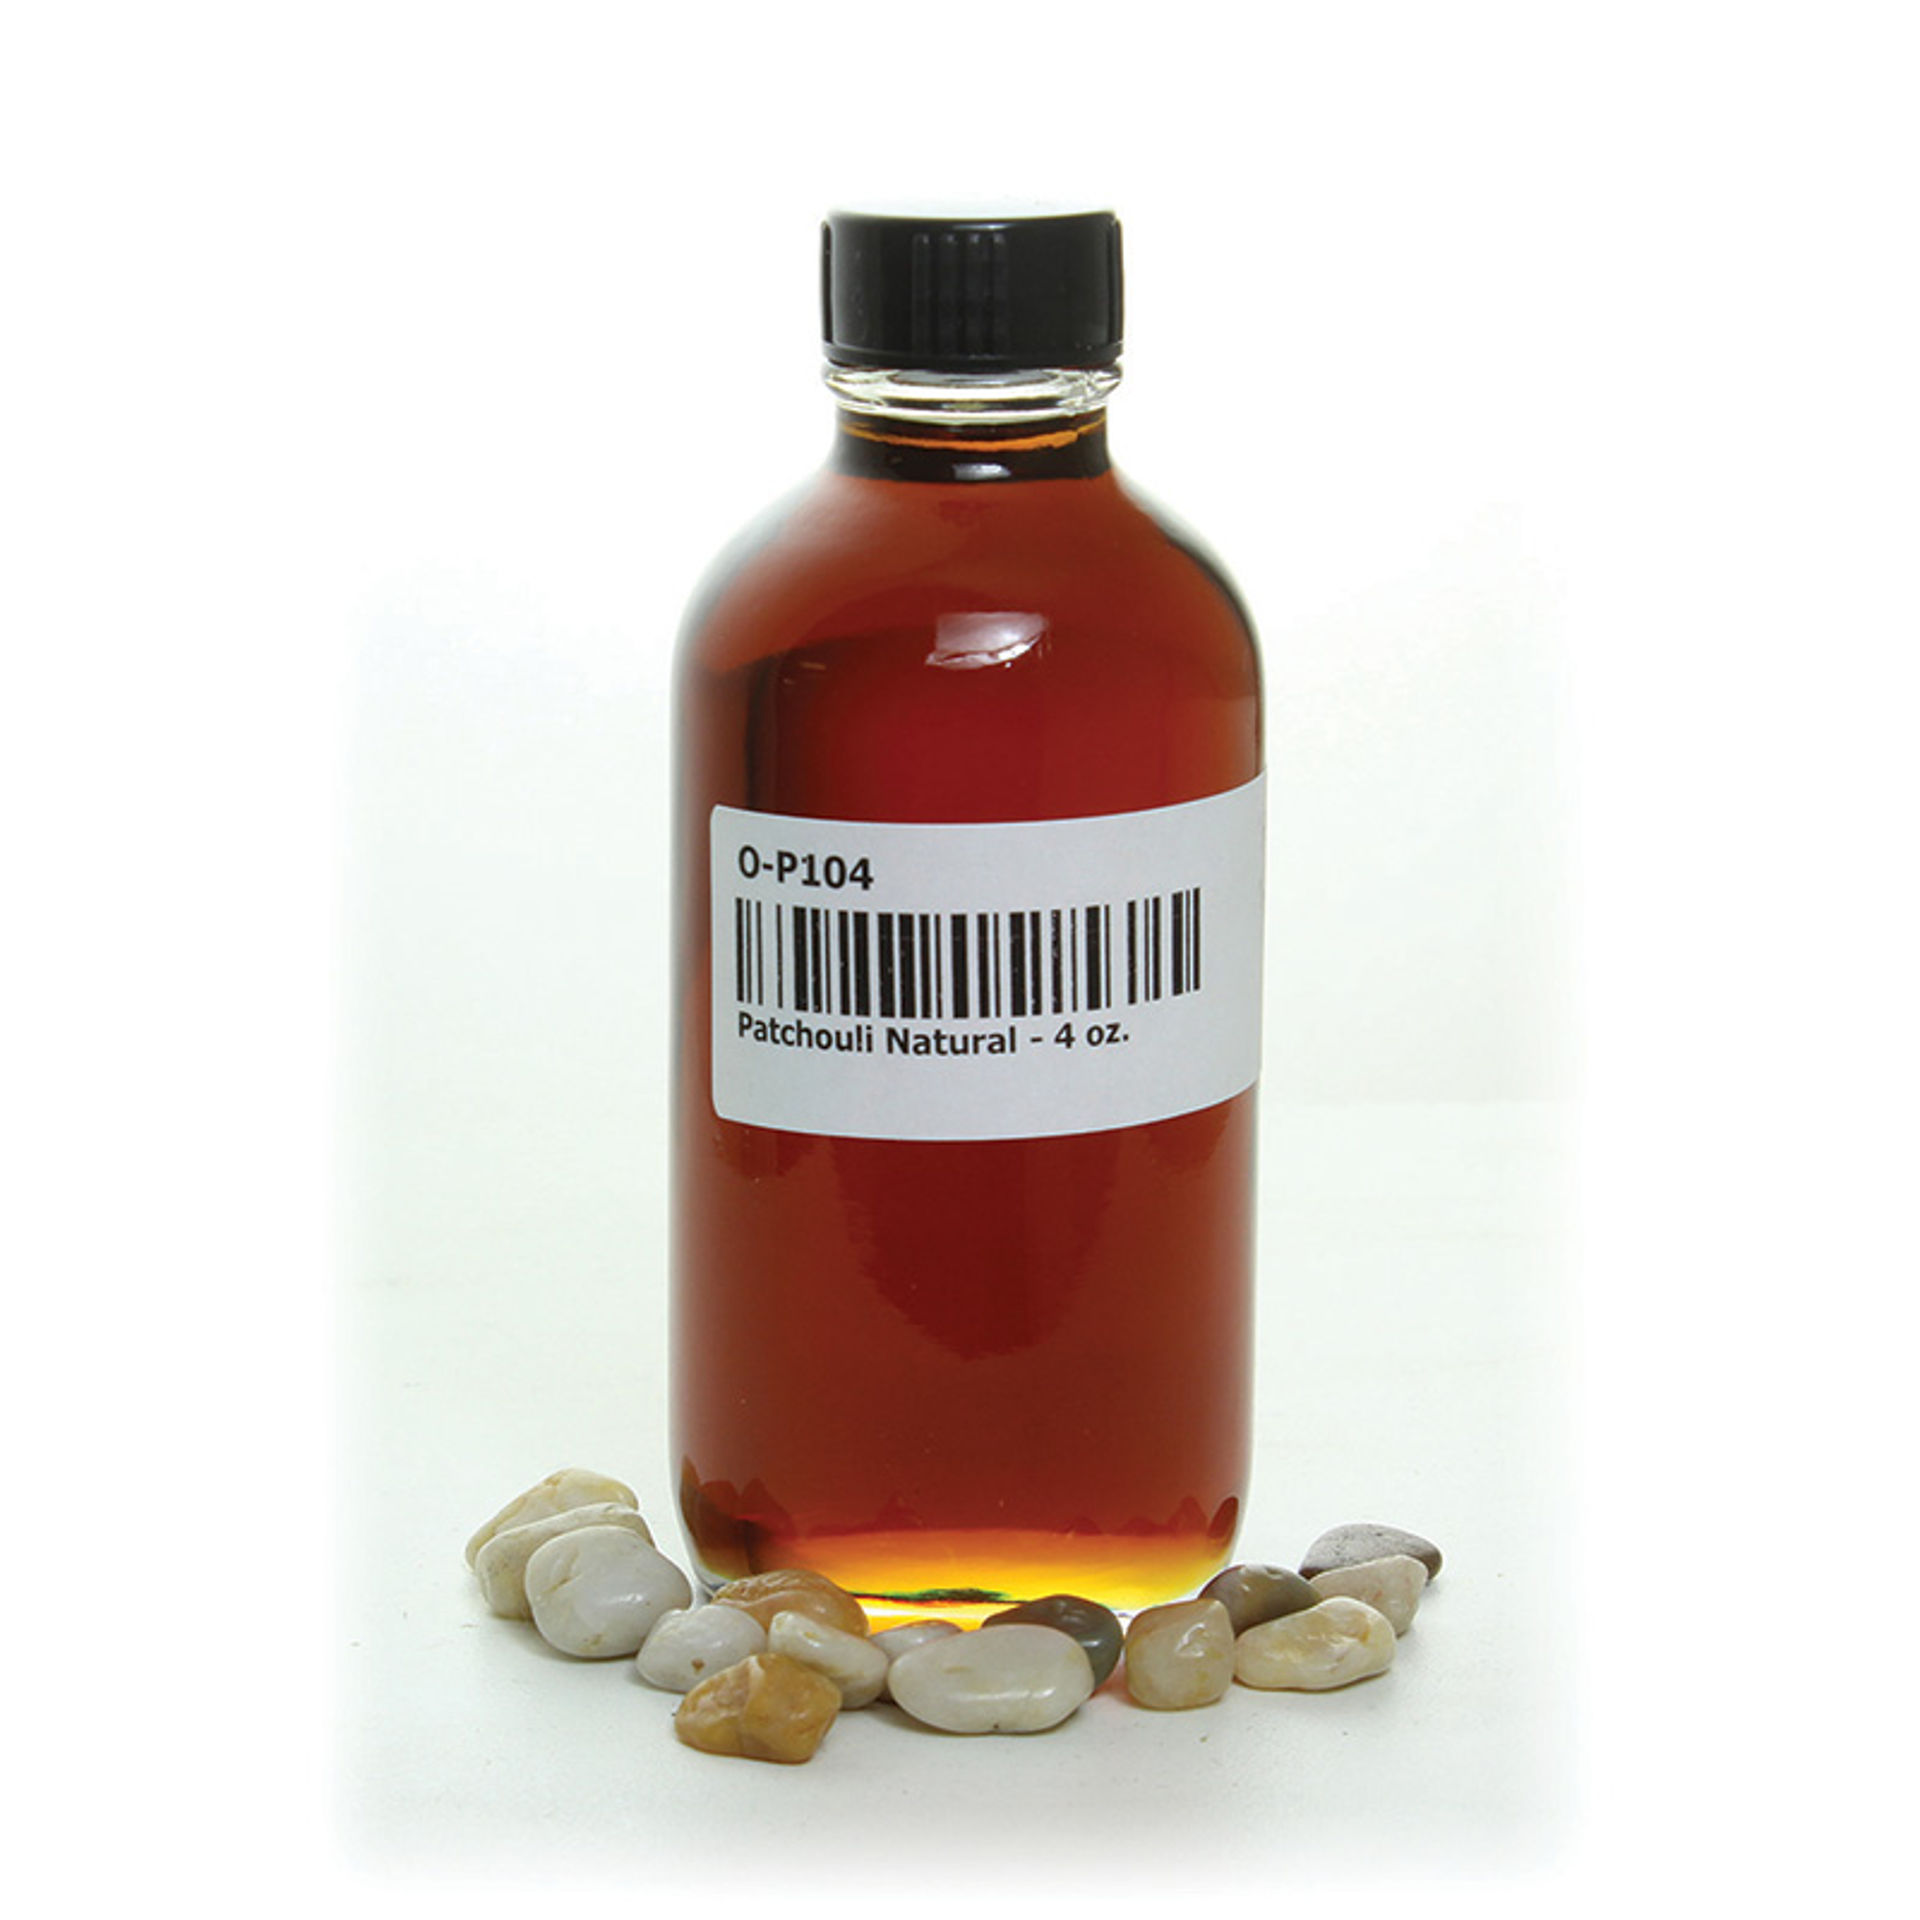 Picture of Patchouli Natural - 4 oz.